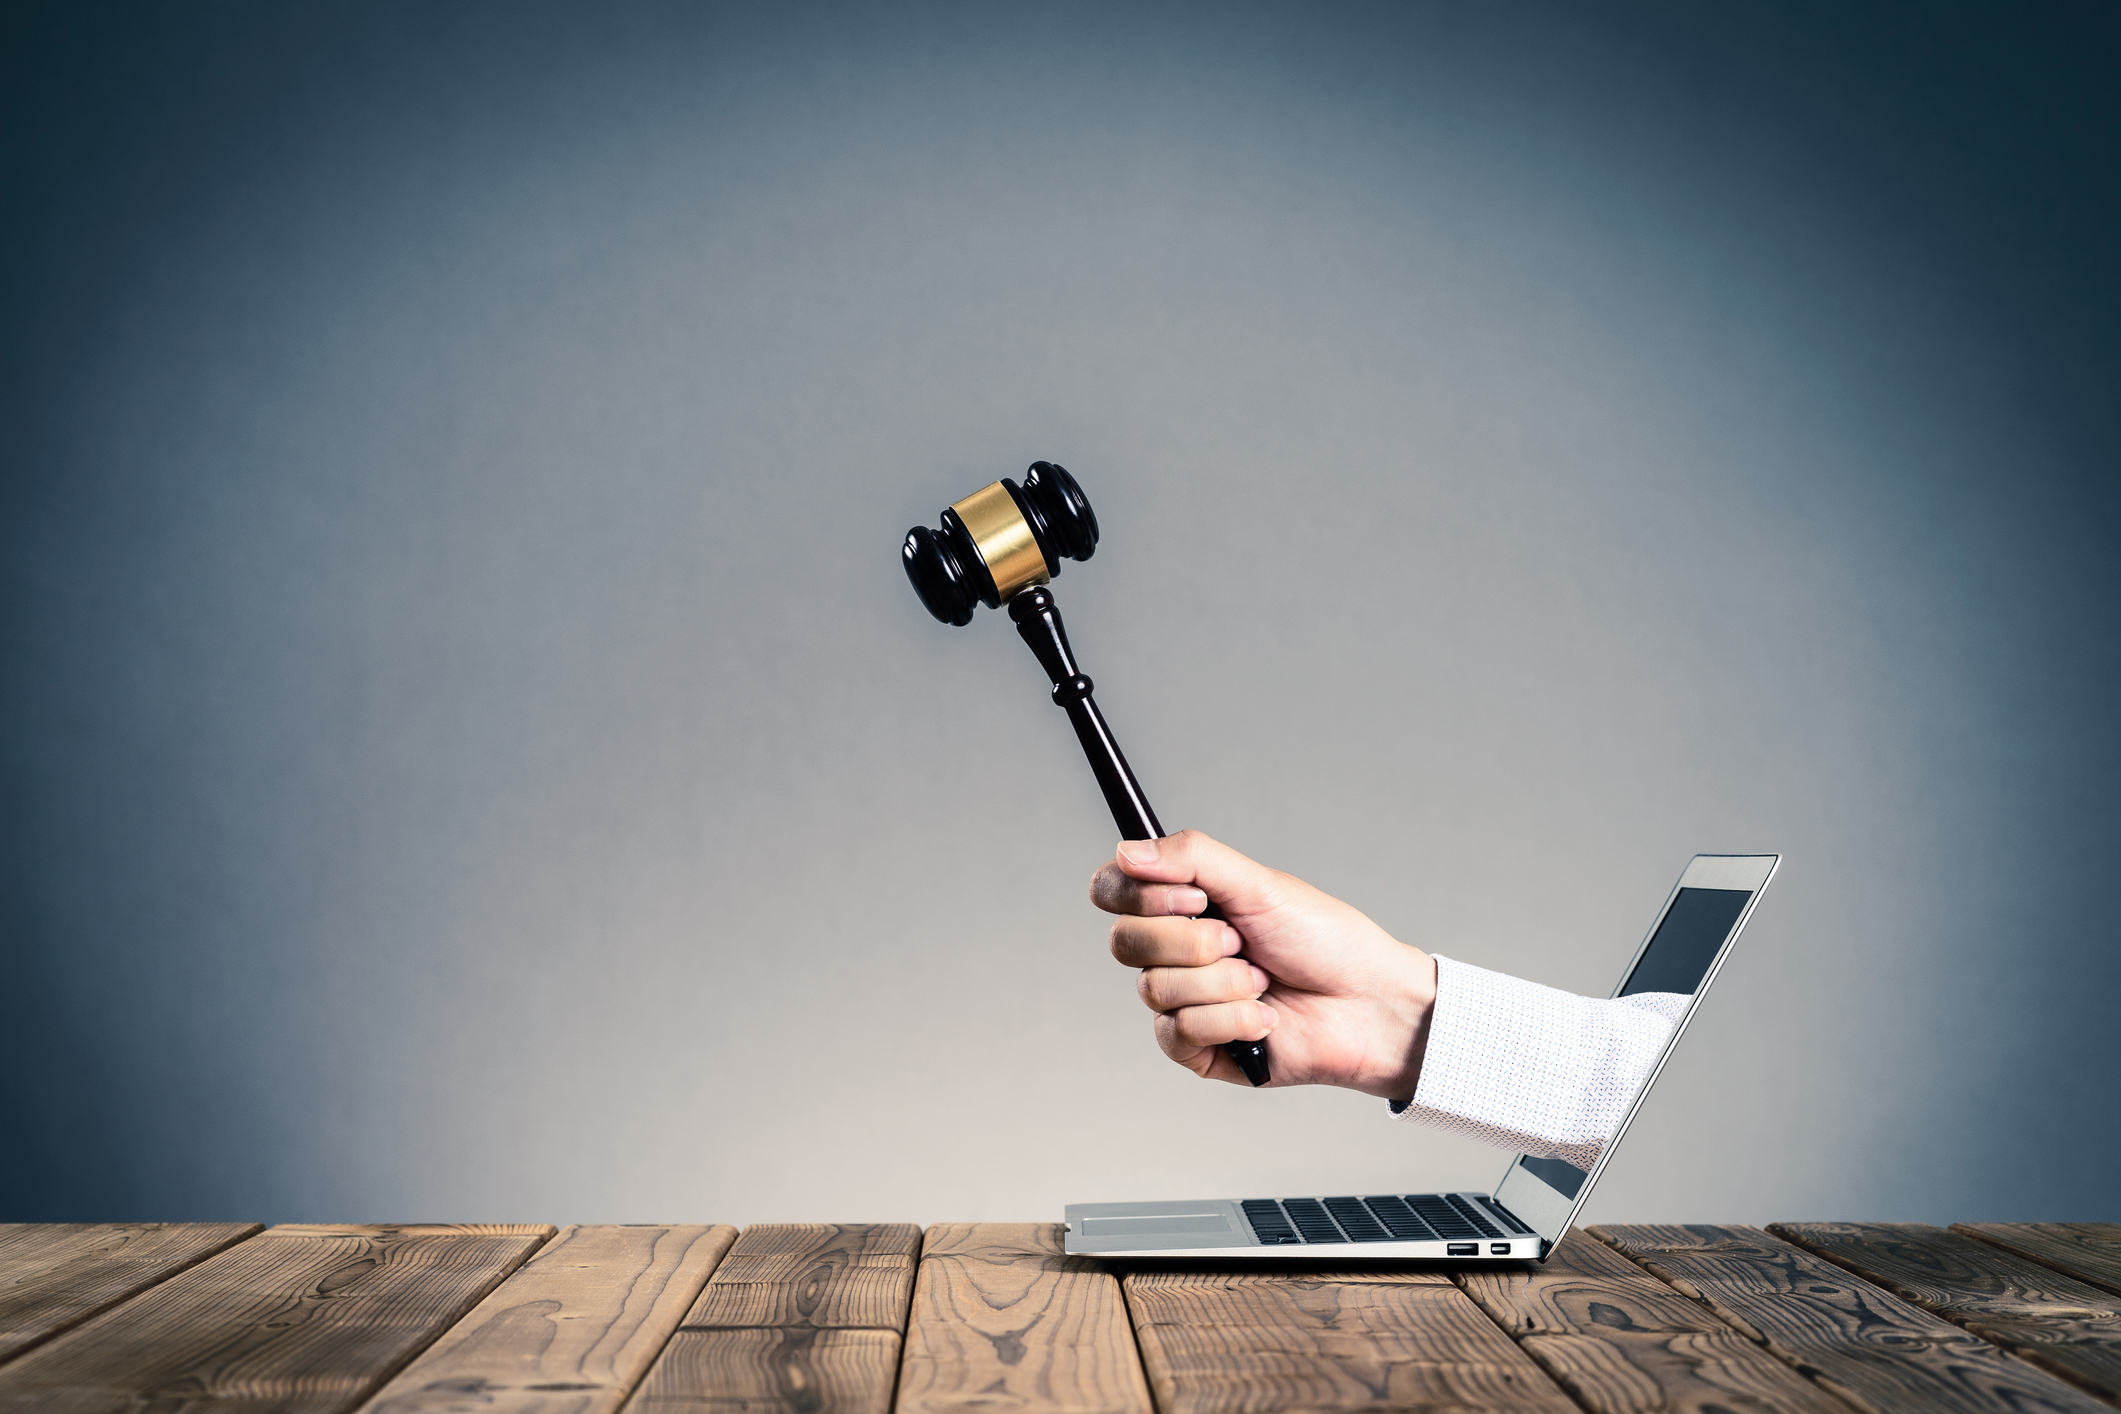 Image signifying online justice of gavel hitting the table. Image credit: iStock